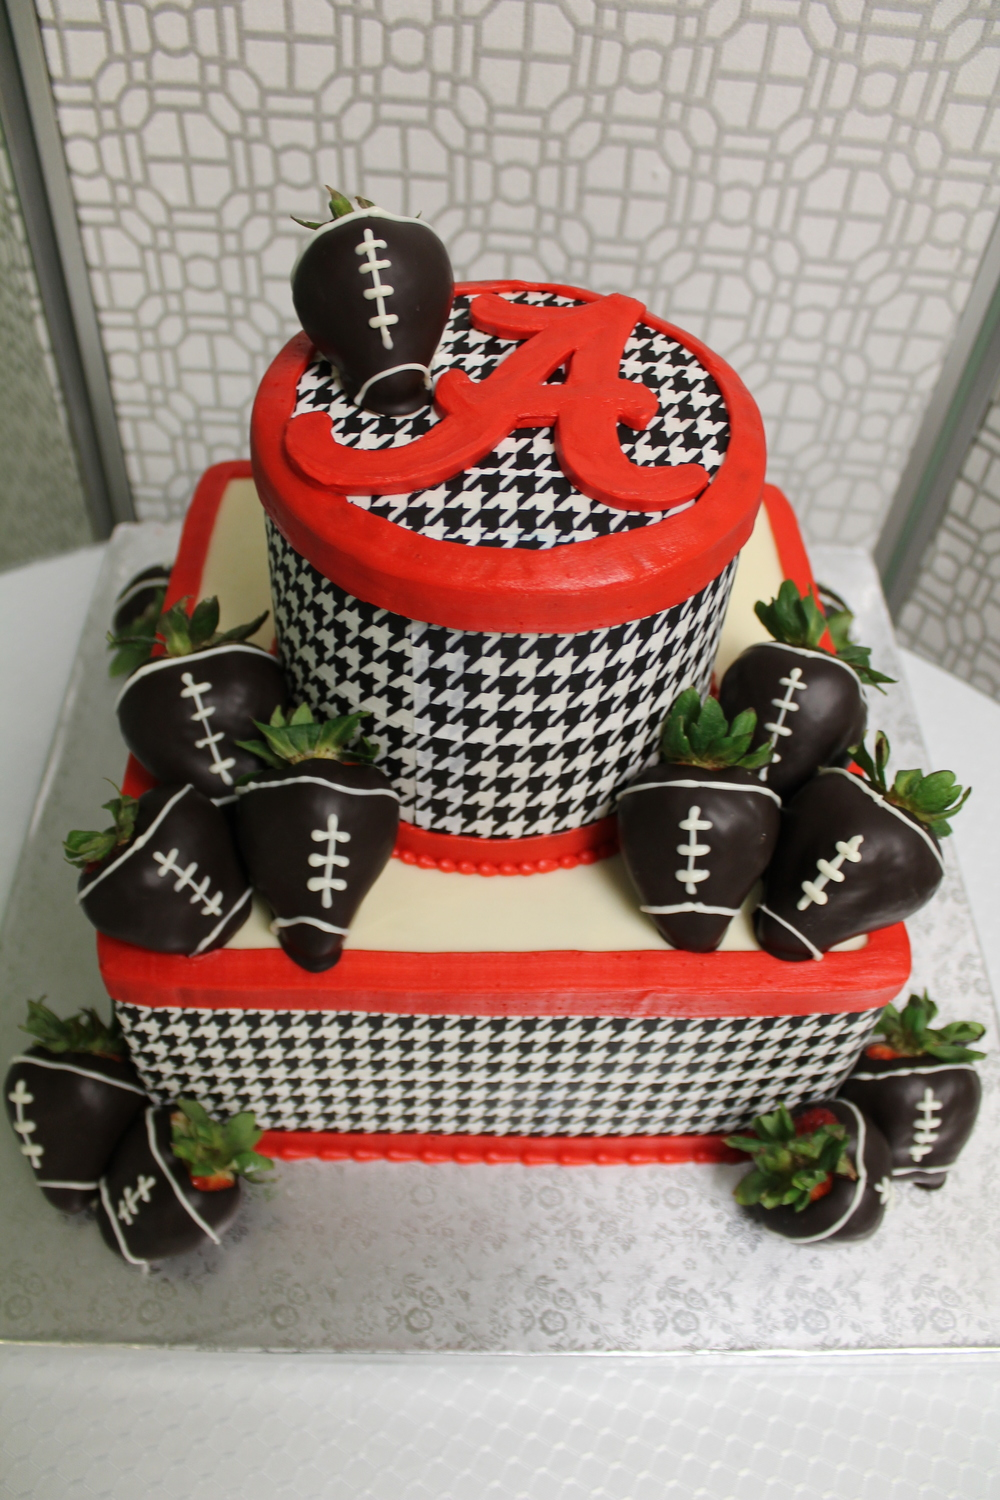 College Football Groom's Cake